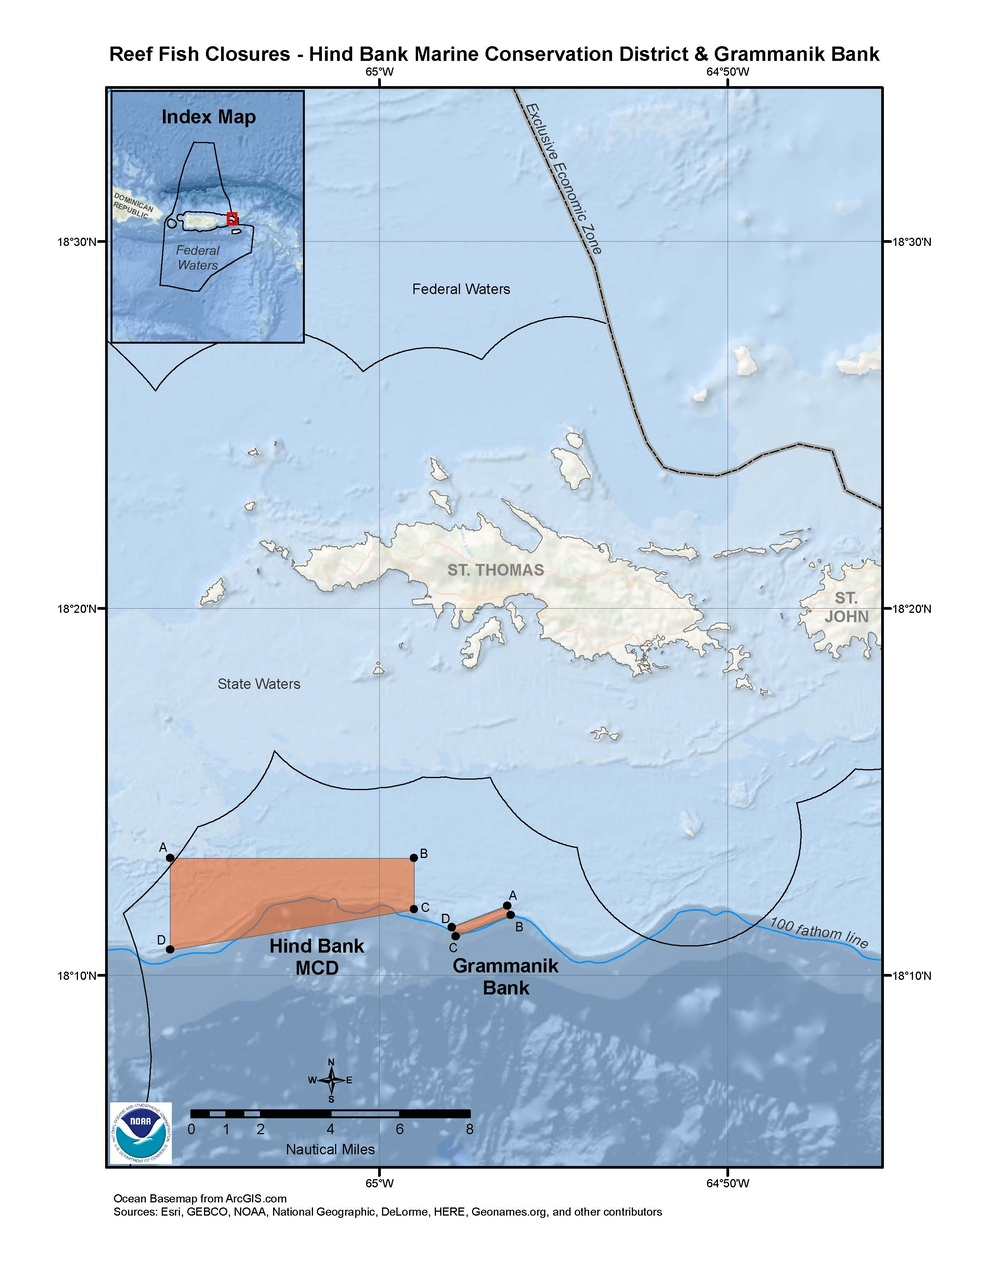 This is a map of the Hind Bank MCD closure area in the waters south of St. Thomas, U.S. Virgin Islands in the U.S. Caribbean.